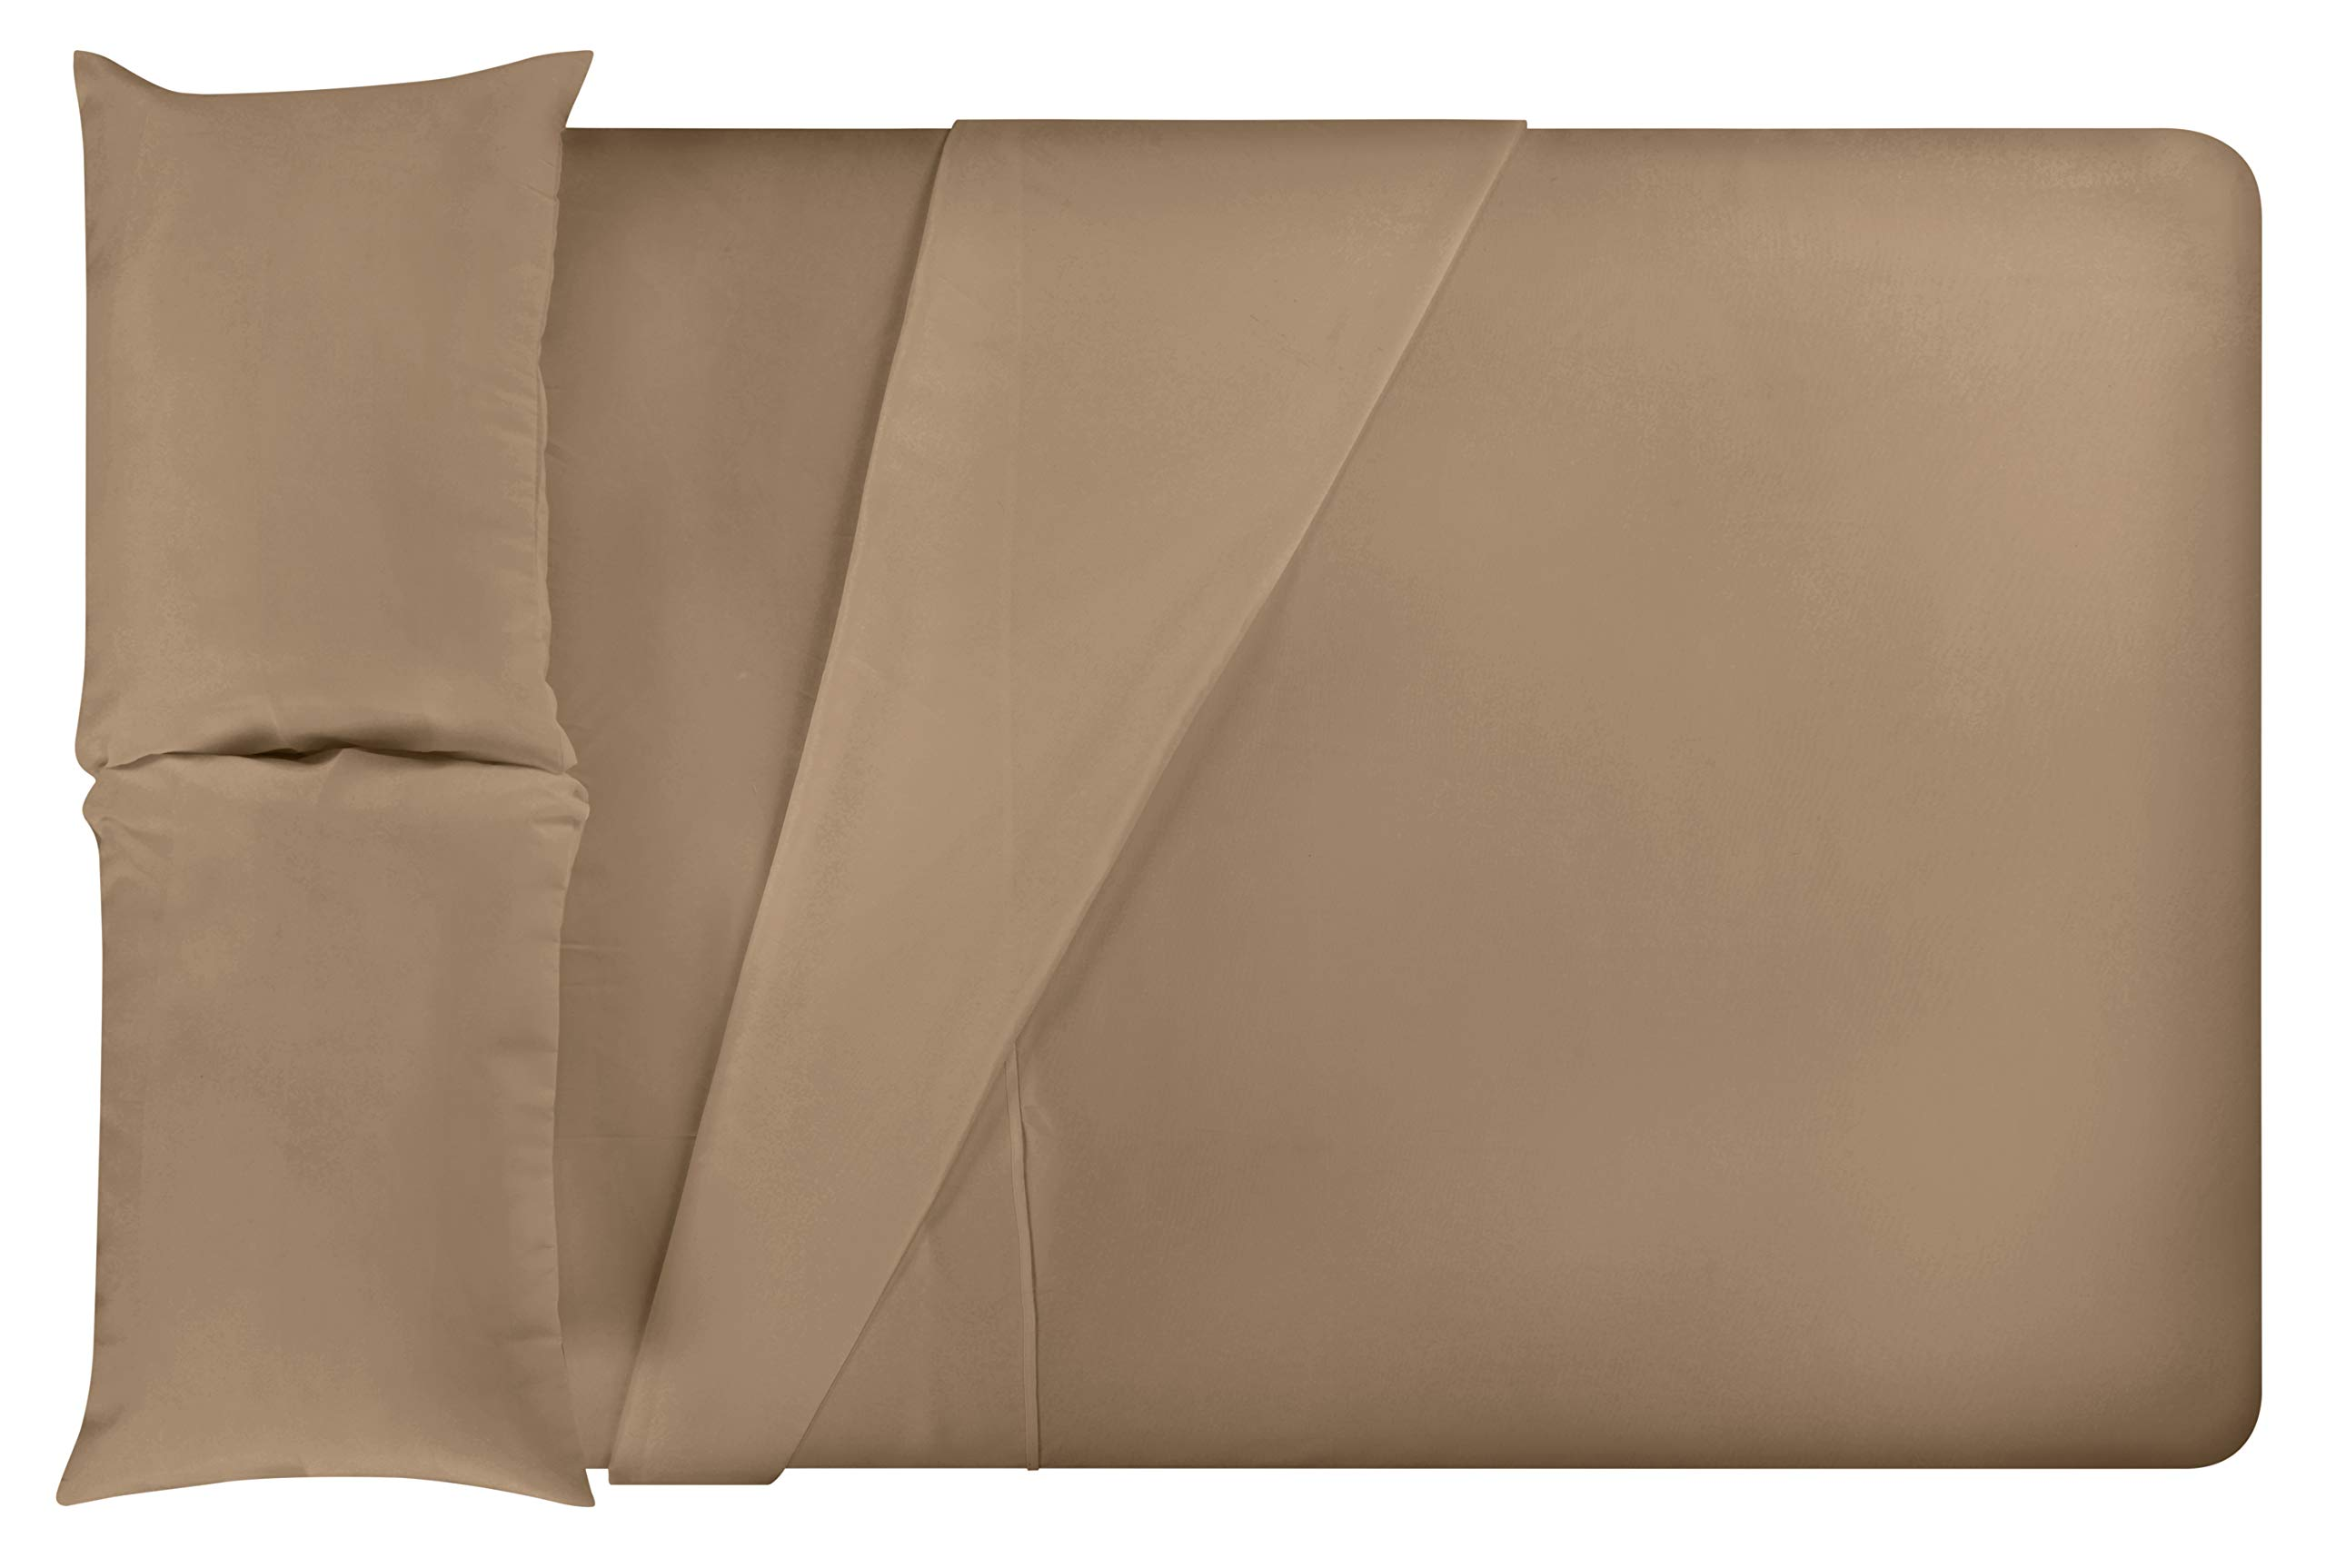 LuxClub 4 PC Microfiber and Bamboo Sheet Set: Bamboo Bedding Sheets with Microfiber - Softer and More Breathable Than Cotton - Machine Washable, Dark Khaki, Twin